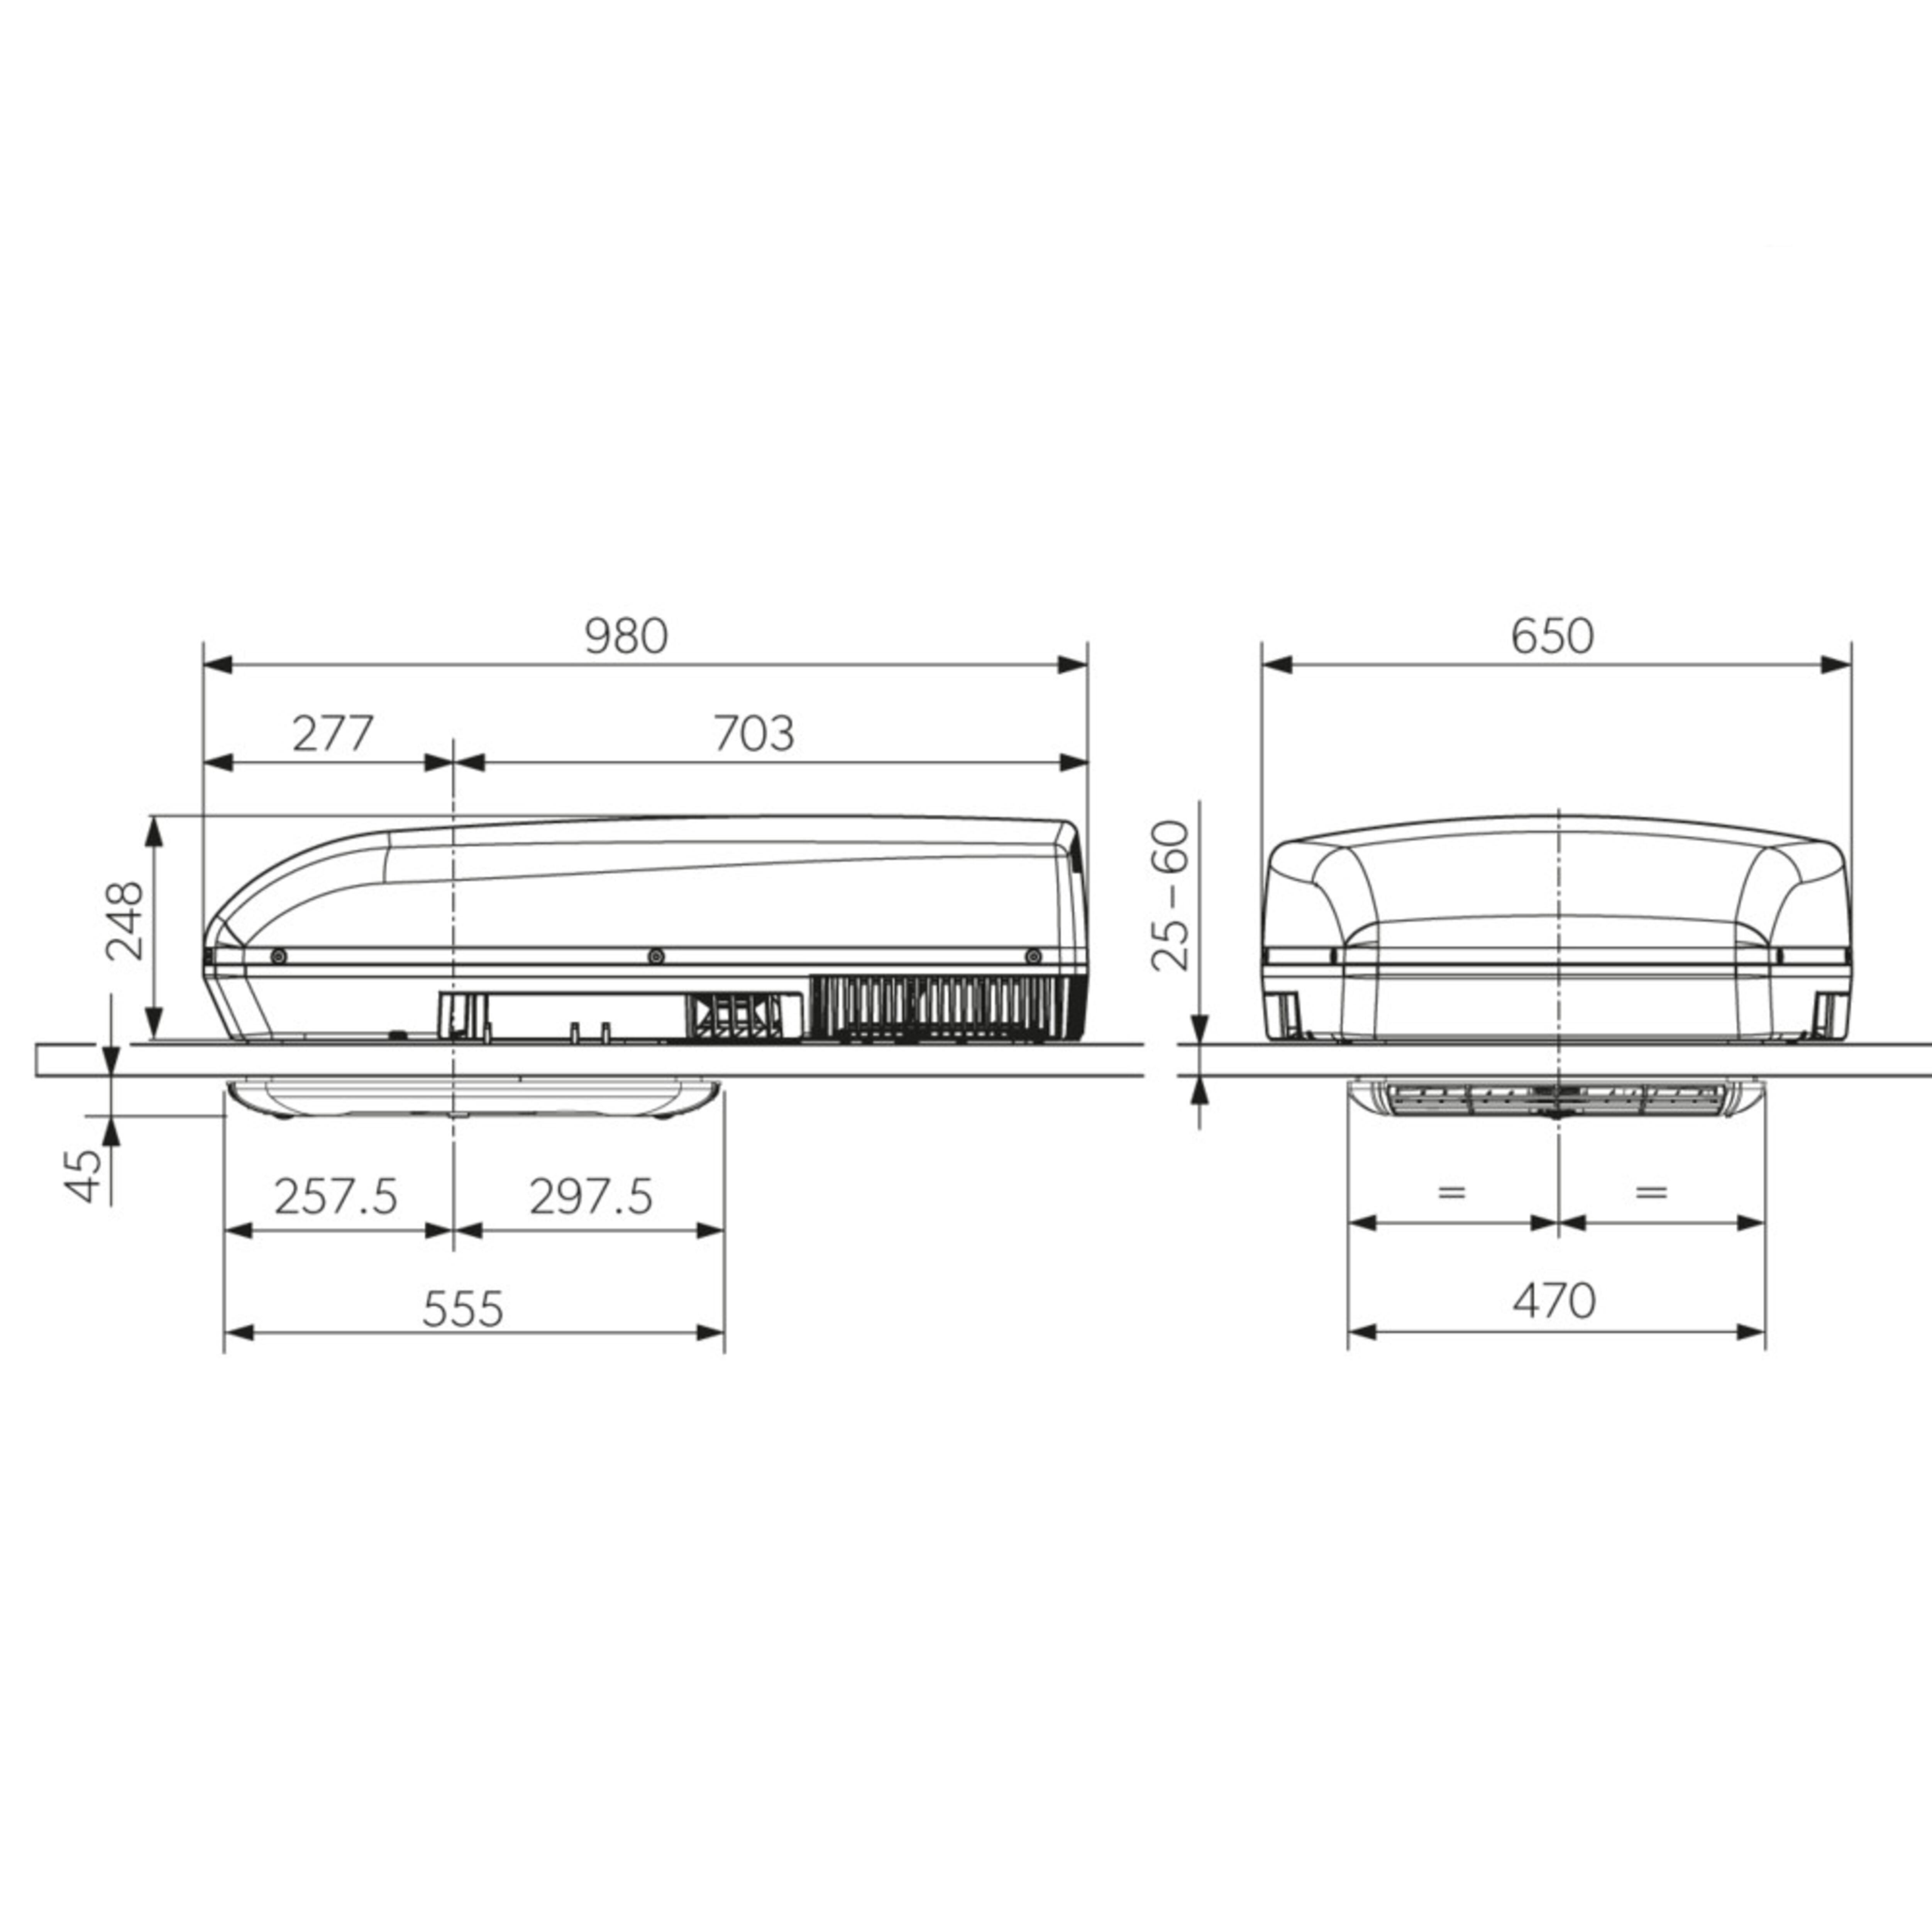 dometic freshjet 3200 roof air conditioner with air distributionDometic Led Light Kit Wiring Schematic #16